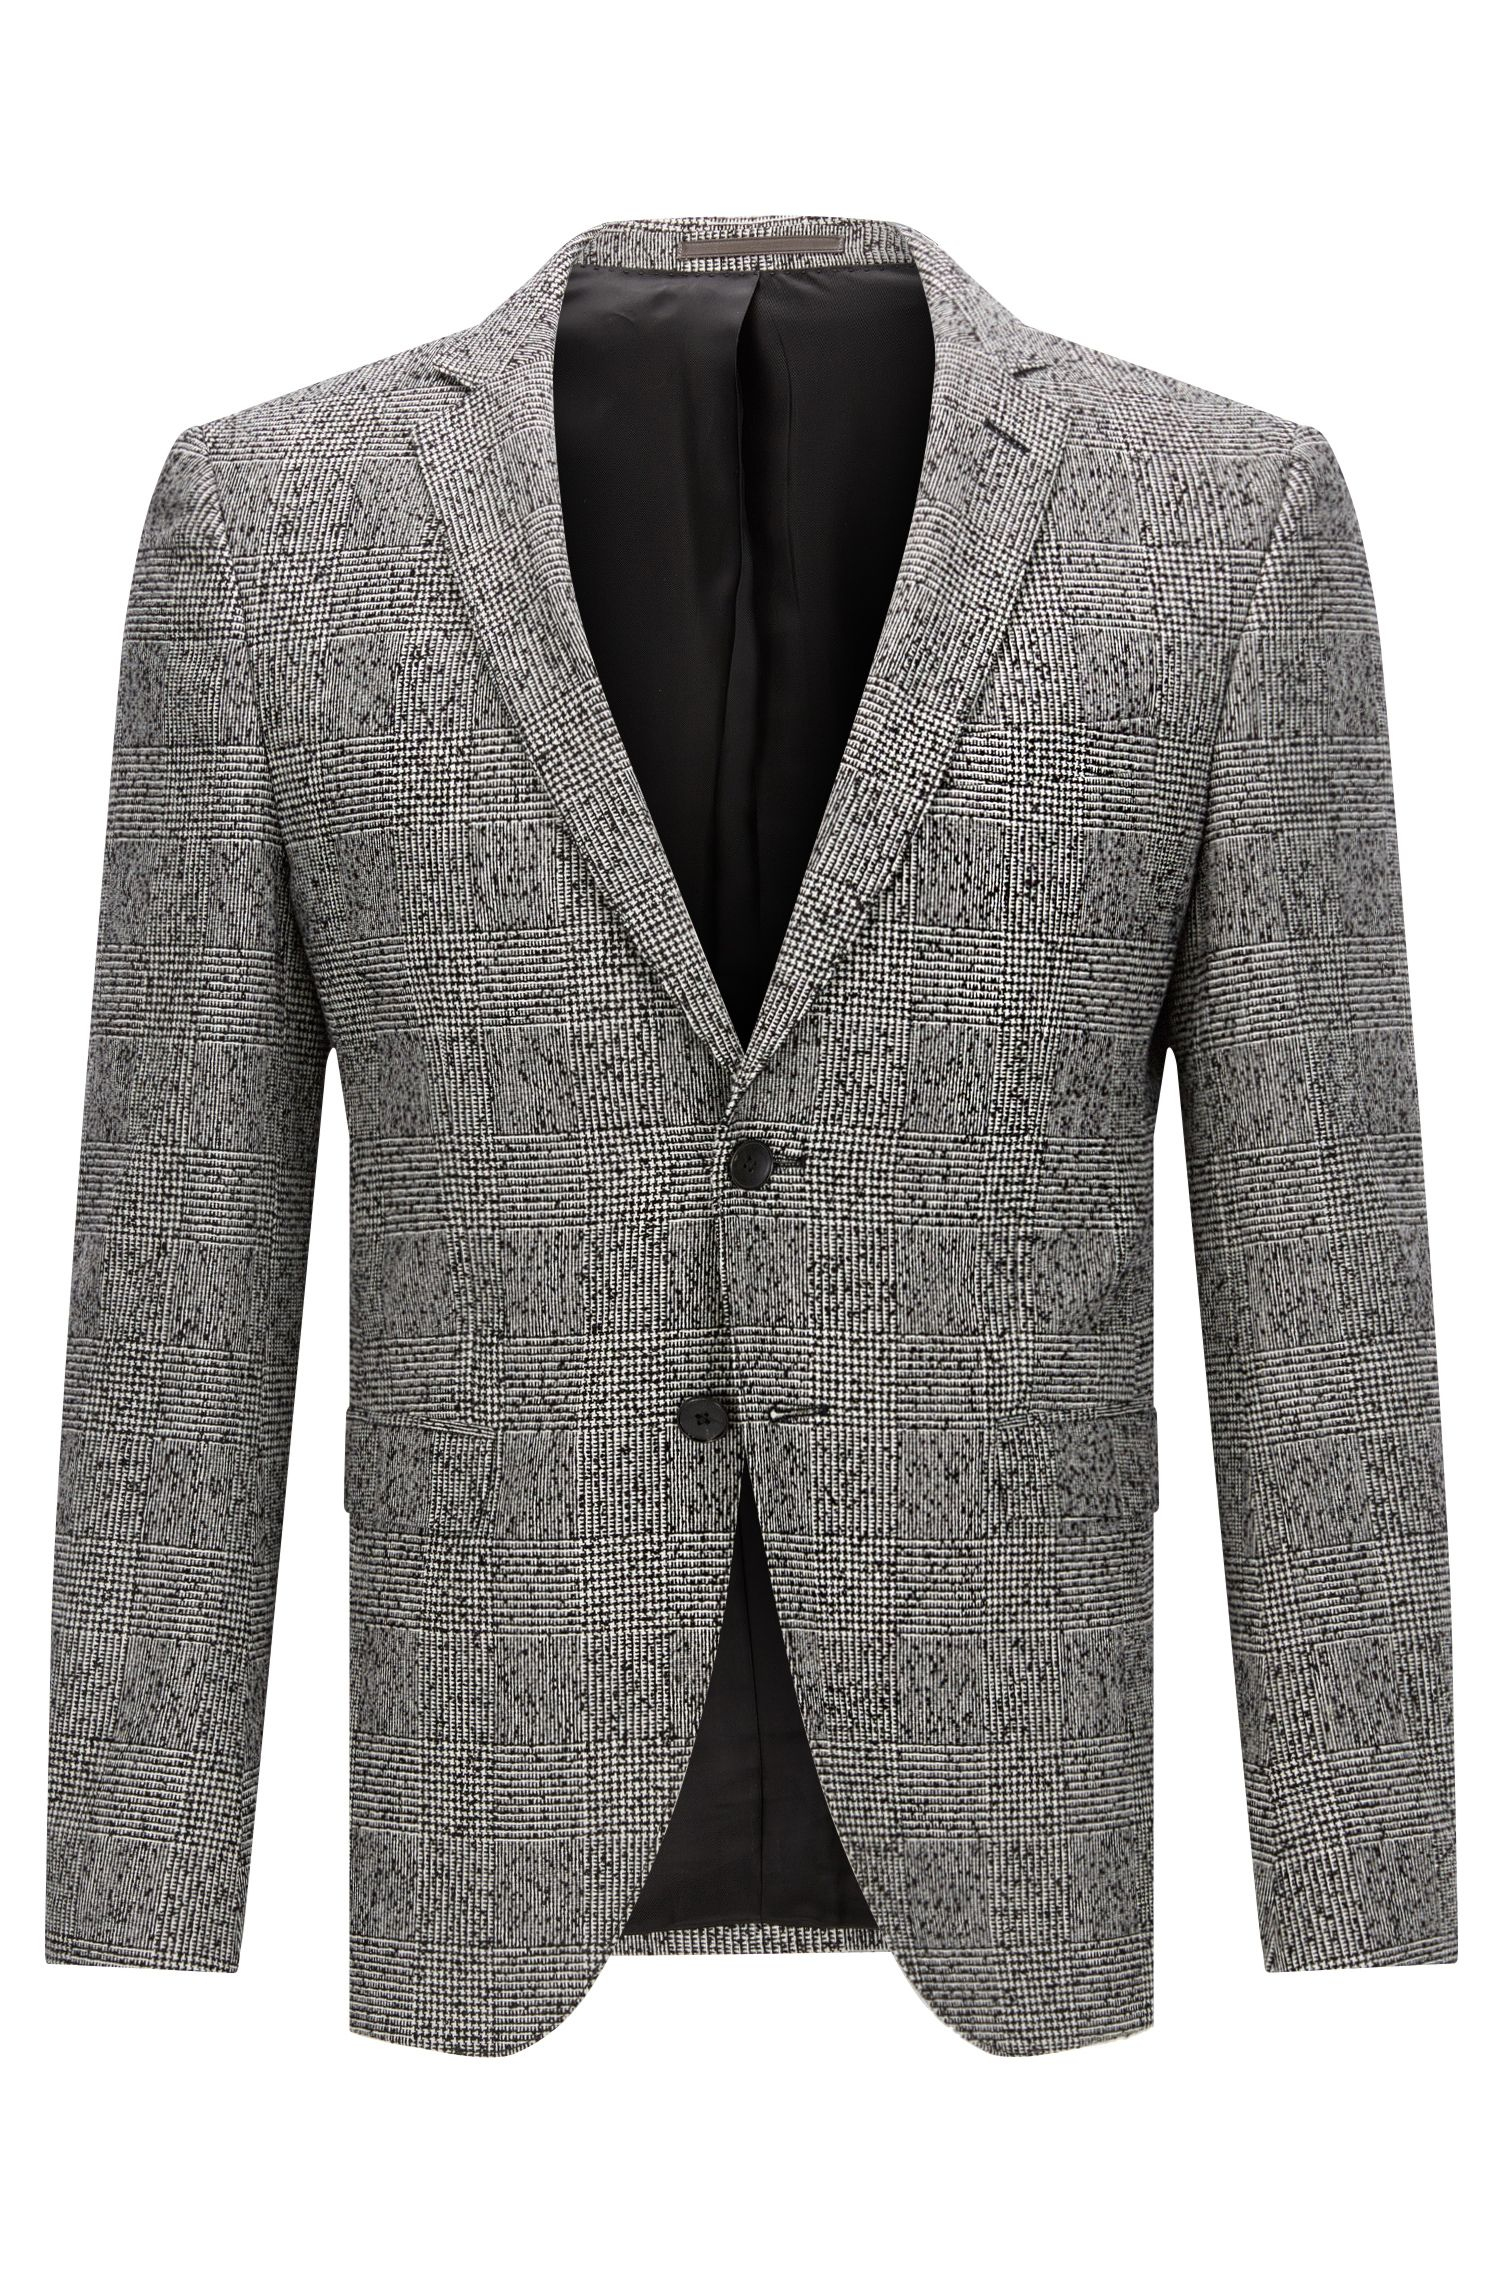 'Rainald' | Glen Plaid Wool Blend Sport Coat